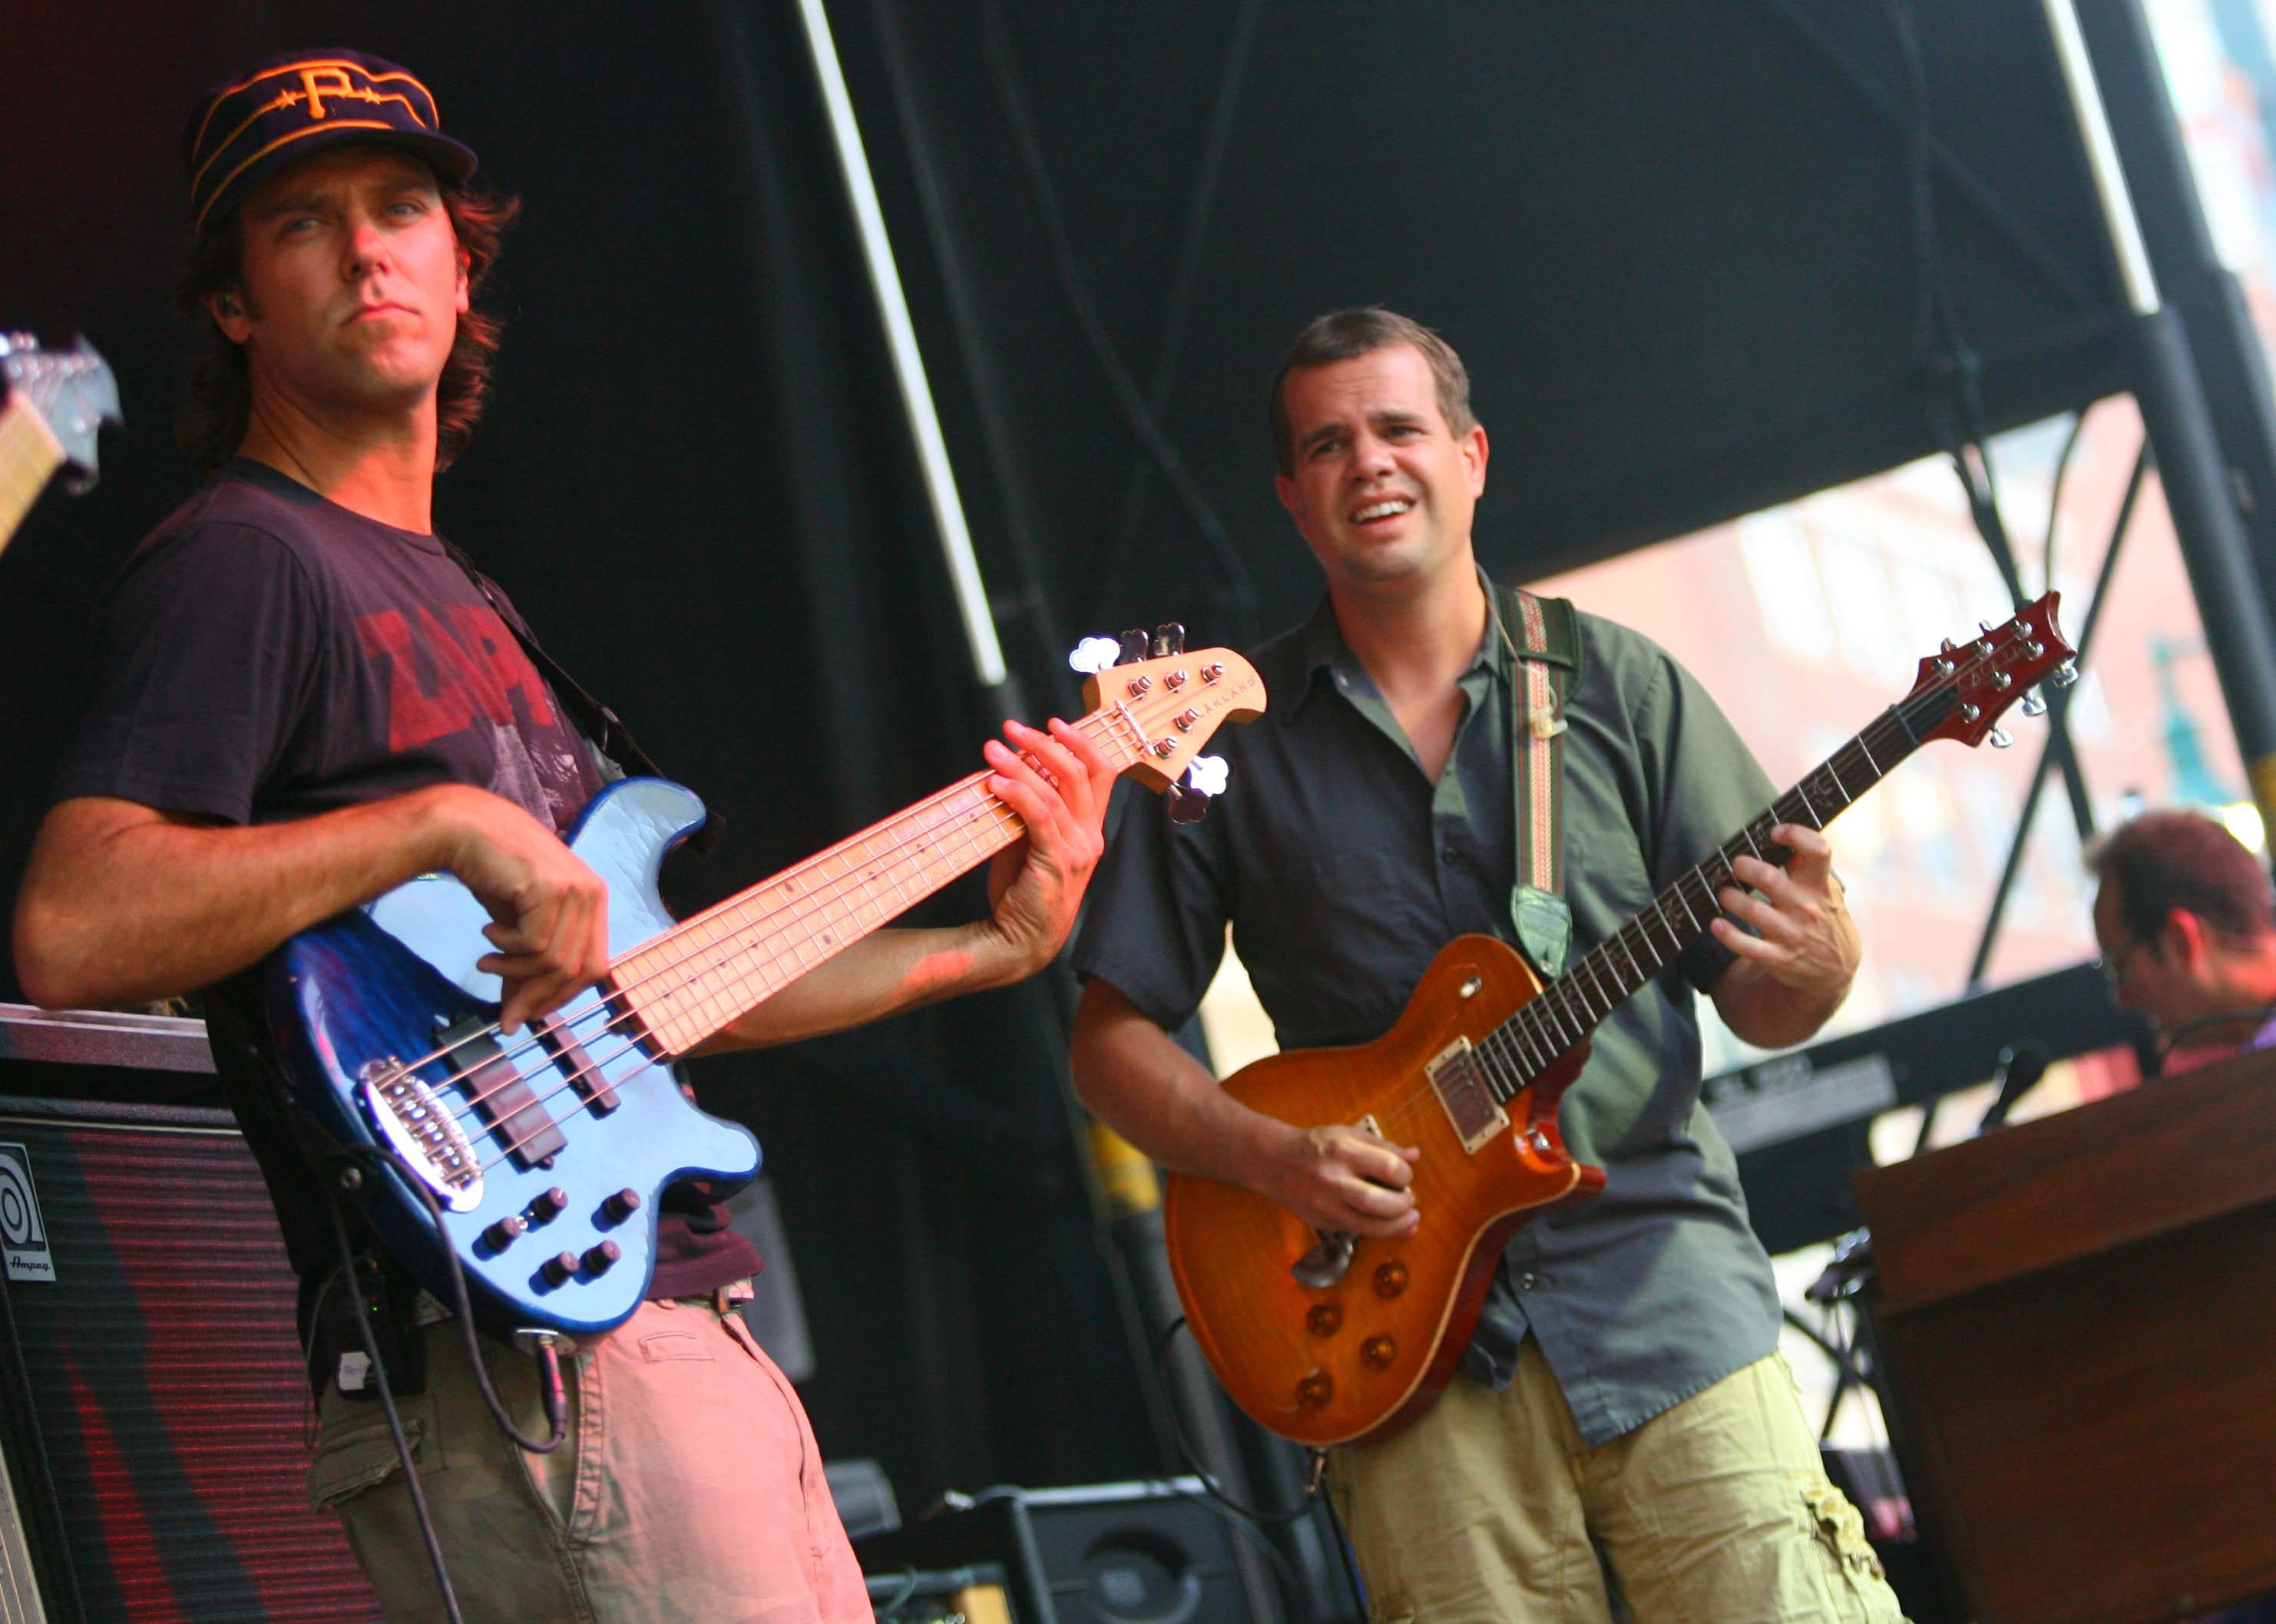 Ryan Stasik, left, plays bass while Brendan Bayliss plays guitar as Umphrey's McGee headlines Thursday at the Square on Thursday, July 15, 2010.{Photo by Bill Wippert}